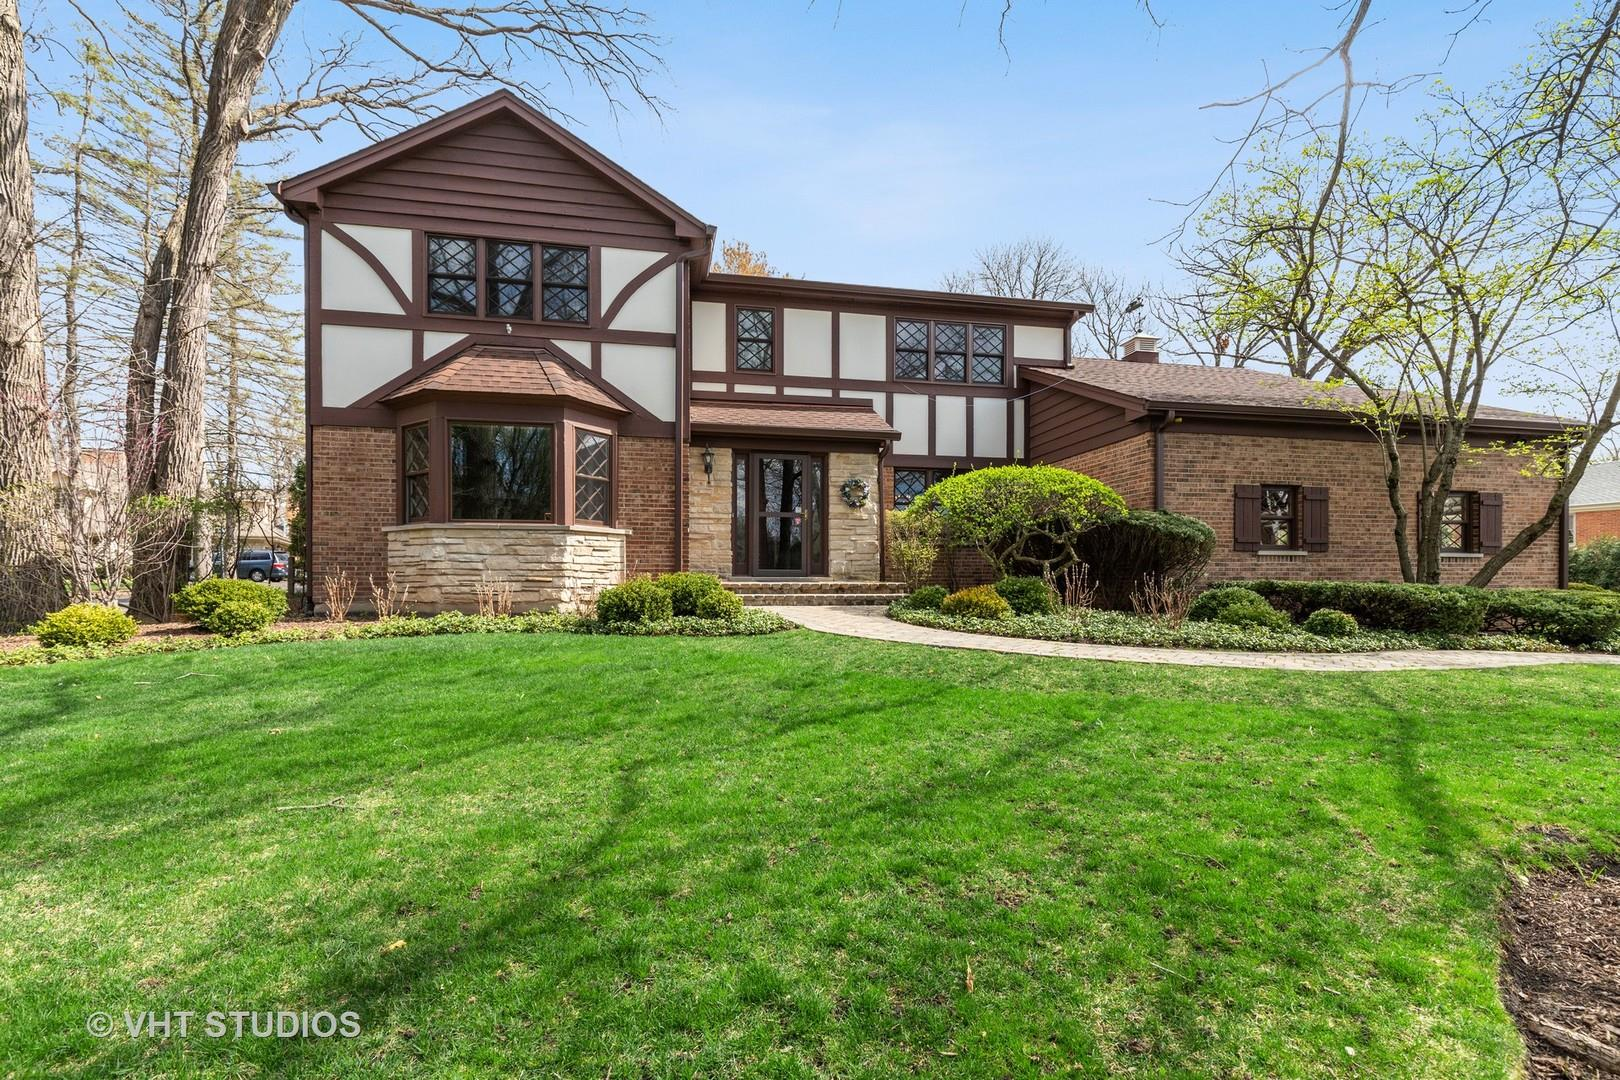 1350 Fairway Drive, Lake Forest, IL 60045 - #: 11054690